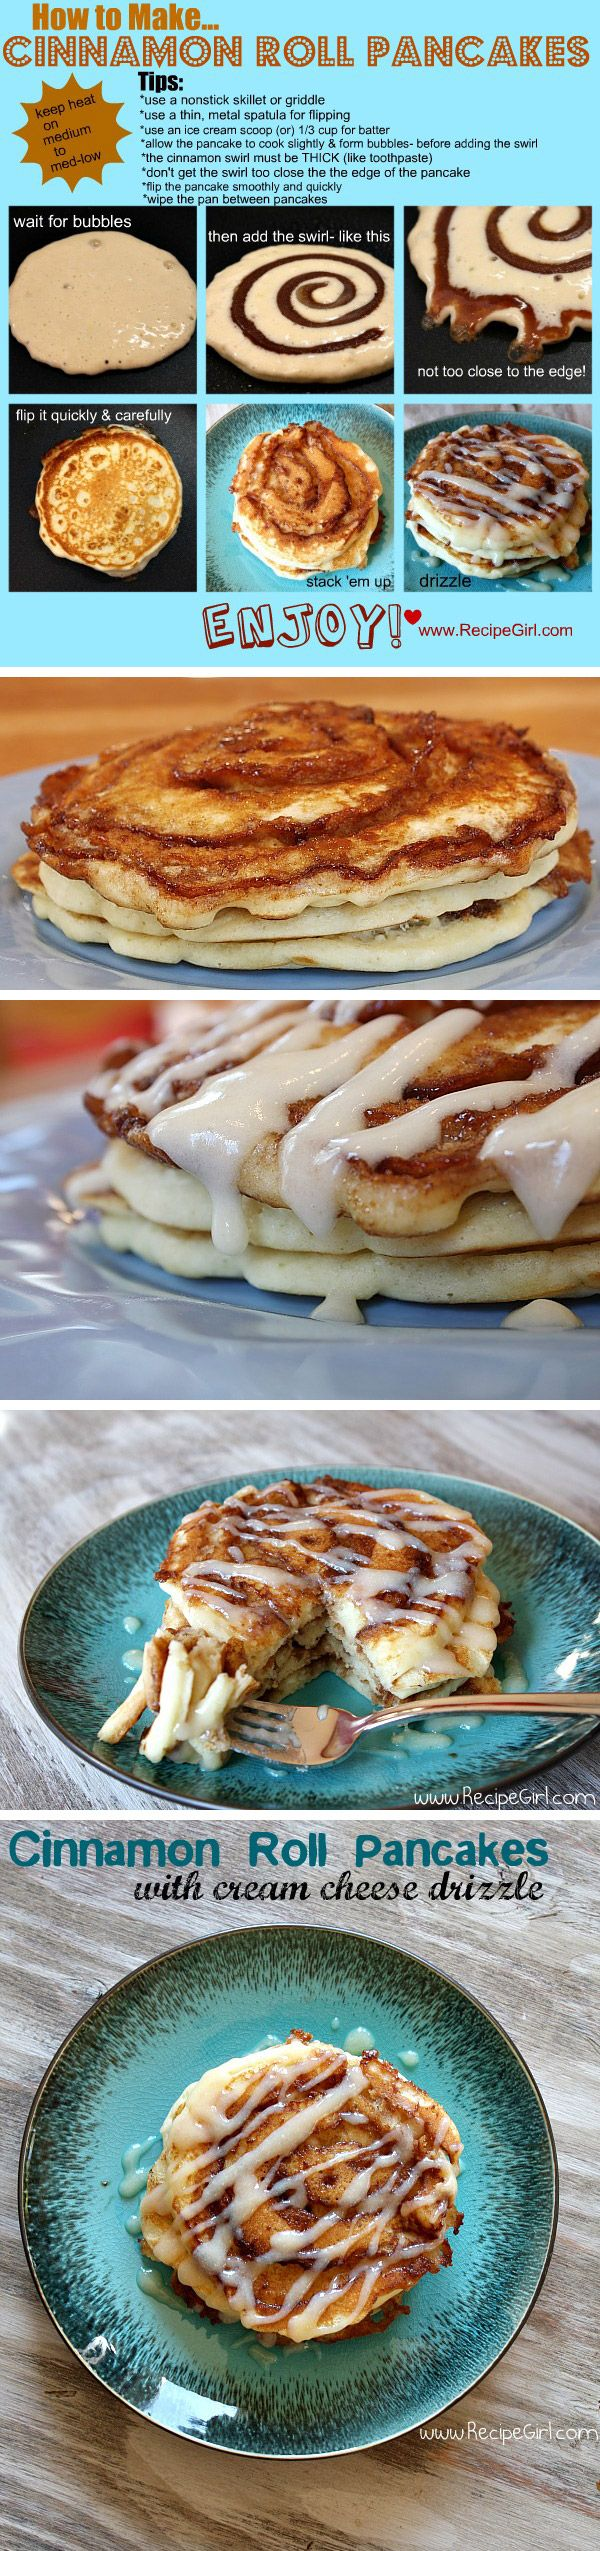 Cinnamon Roll Pancakes. Why do you do this to me, Pinterest???